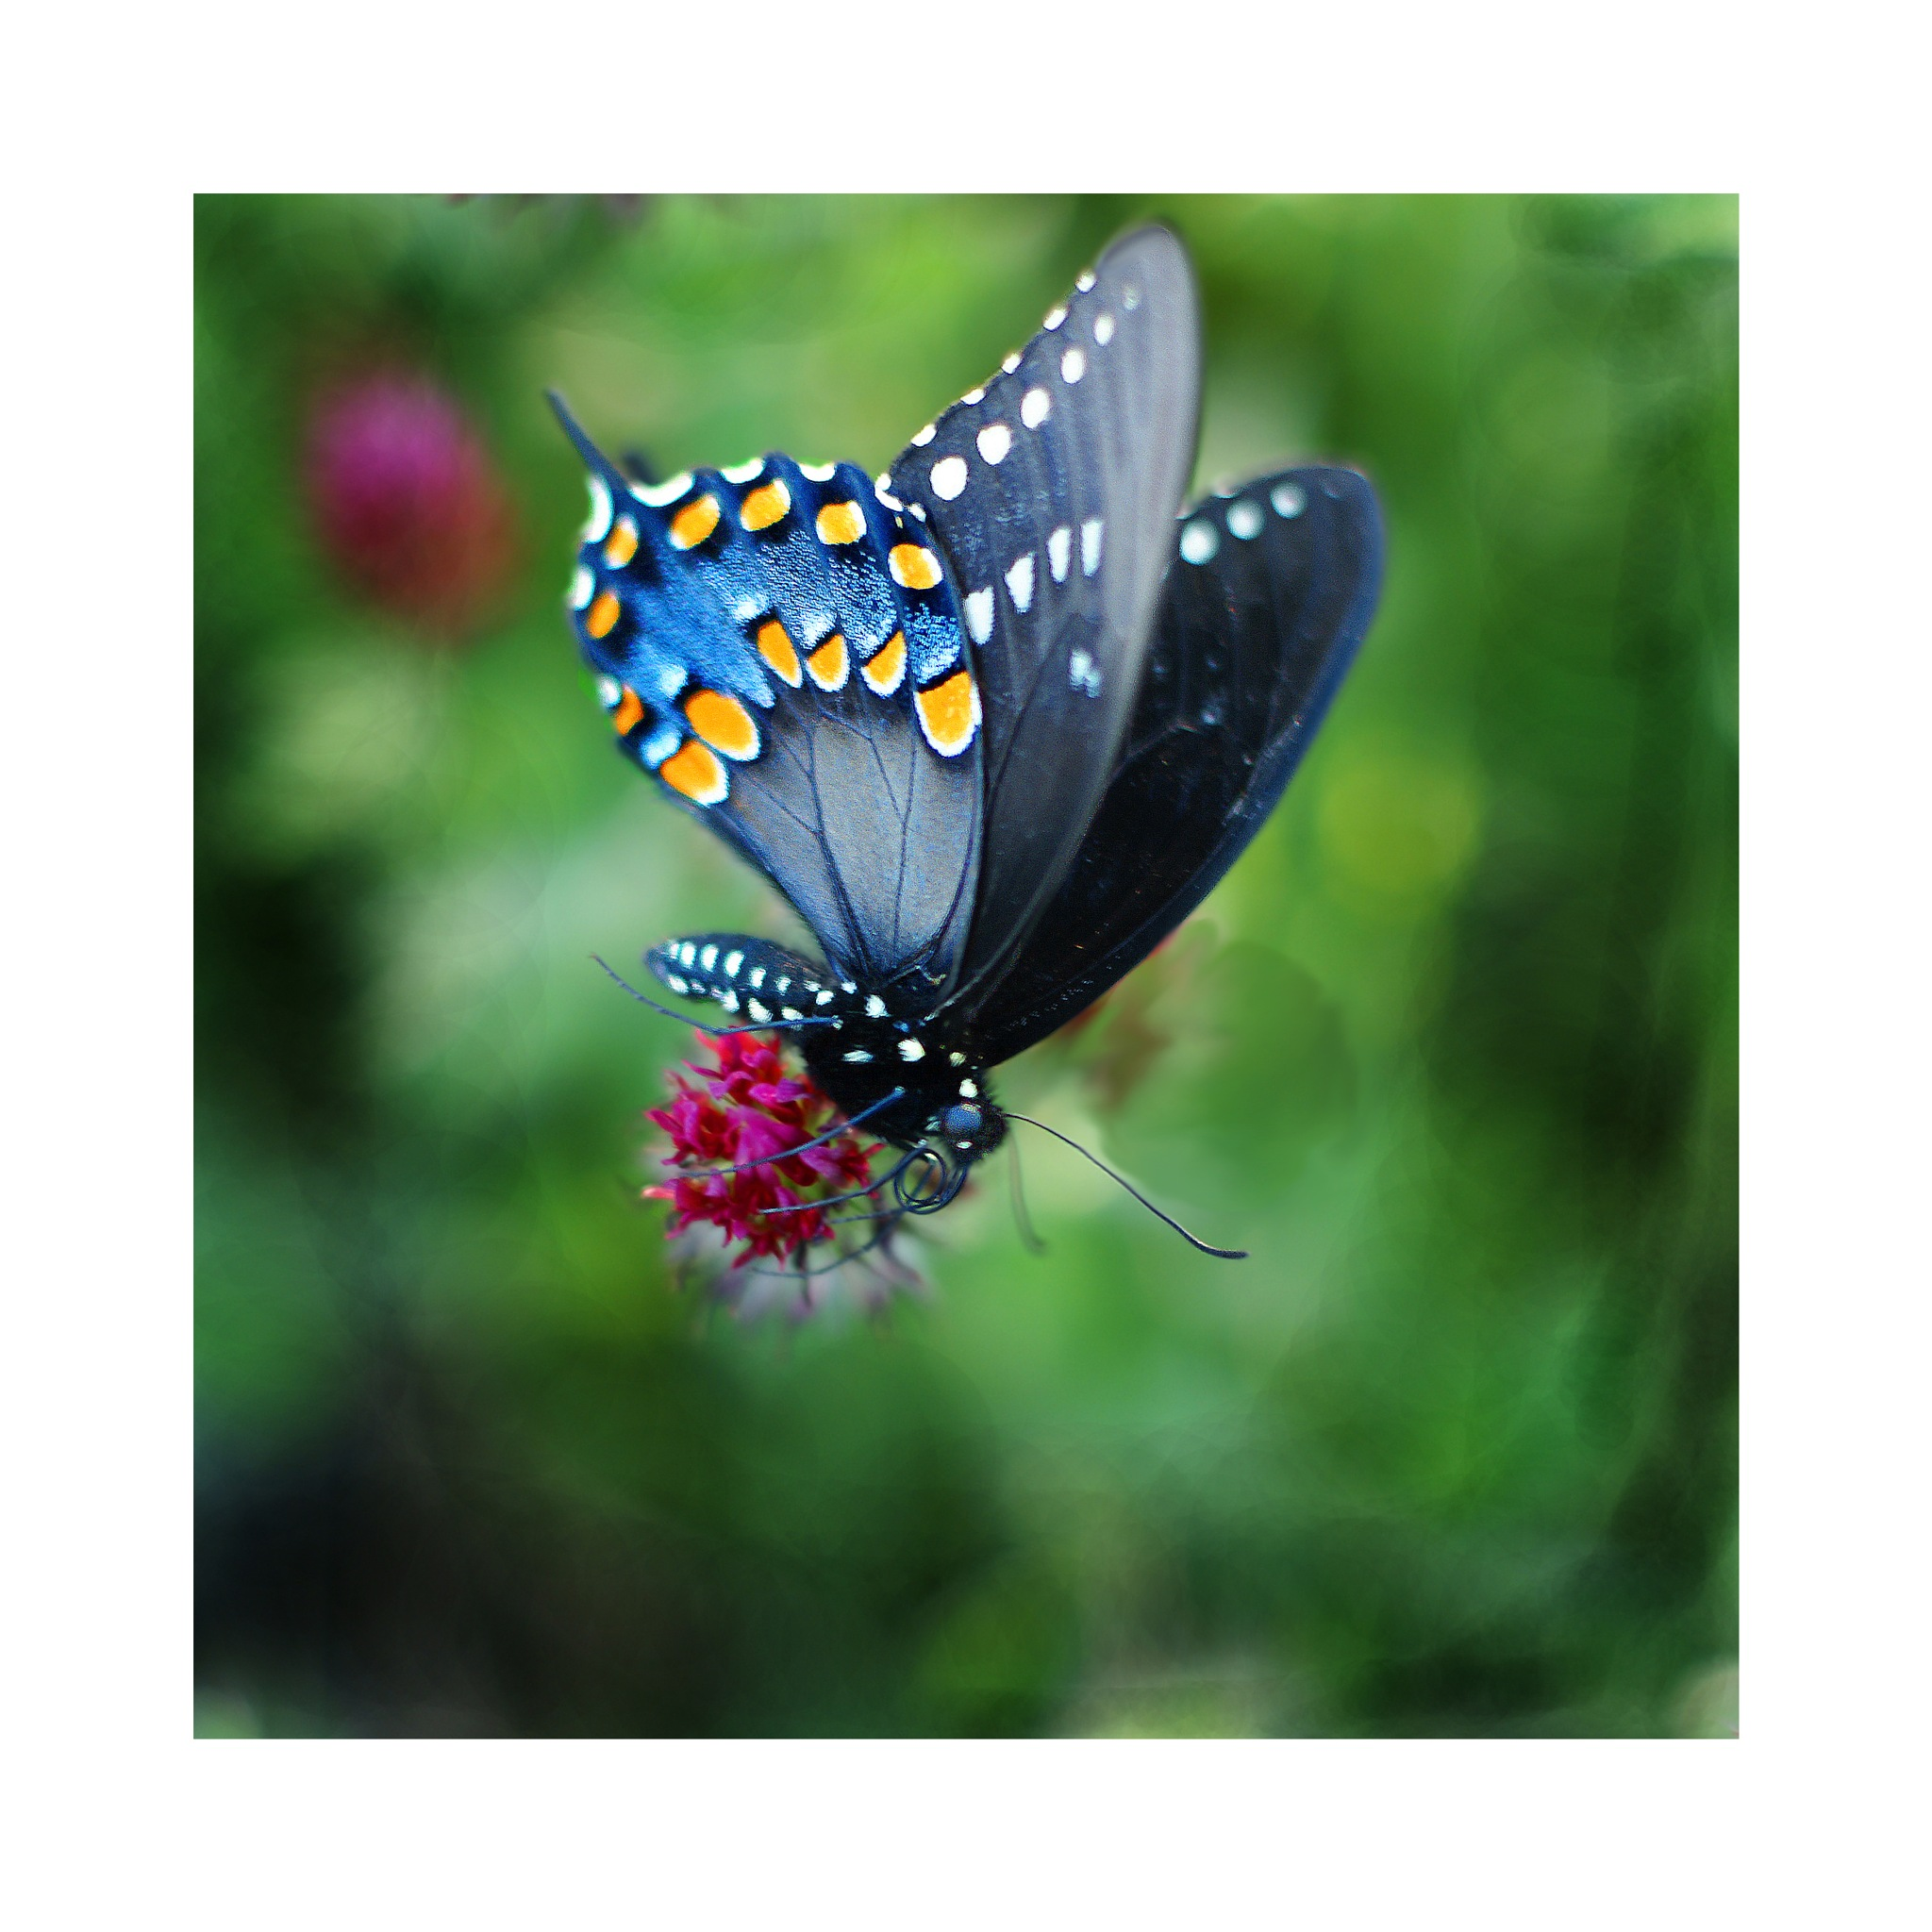 Butterfly on Clover by mfontaine